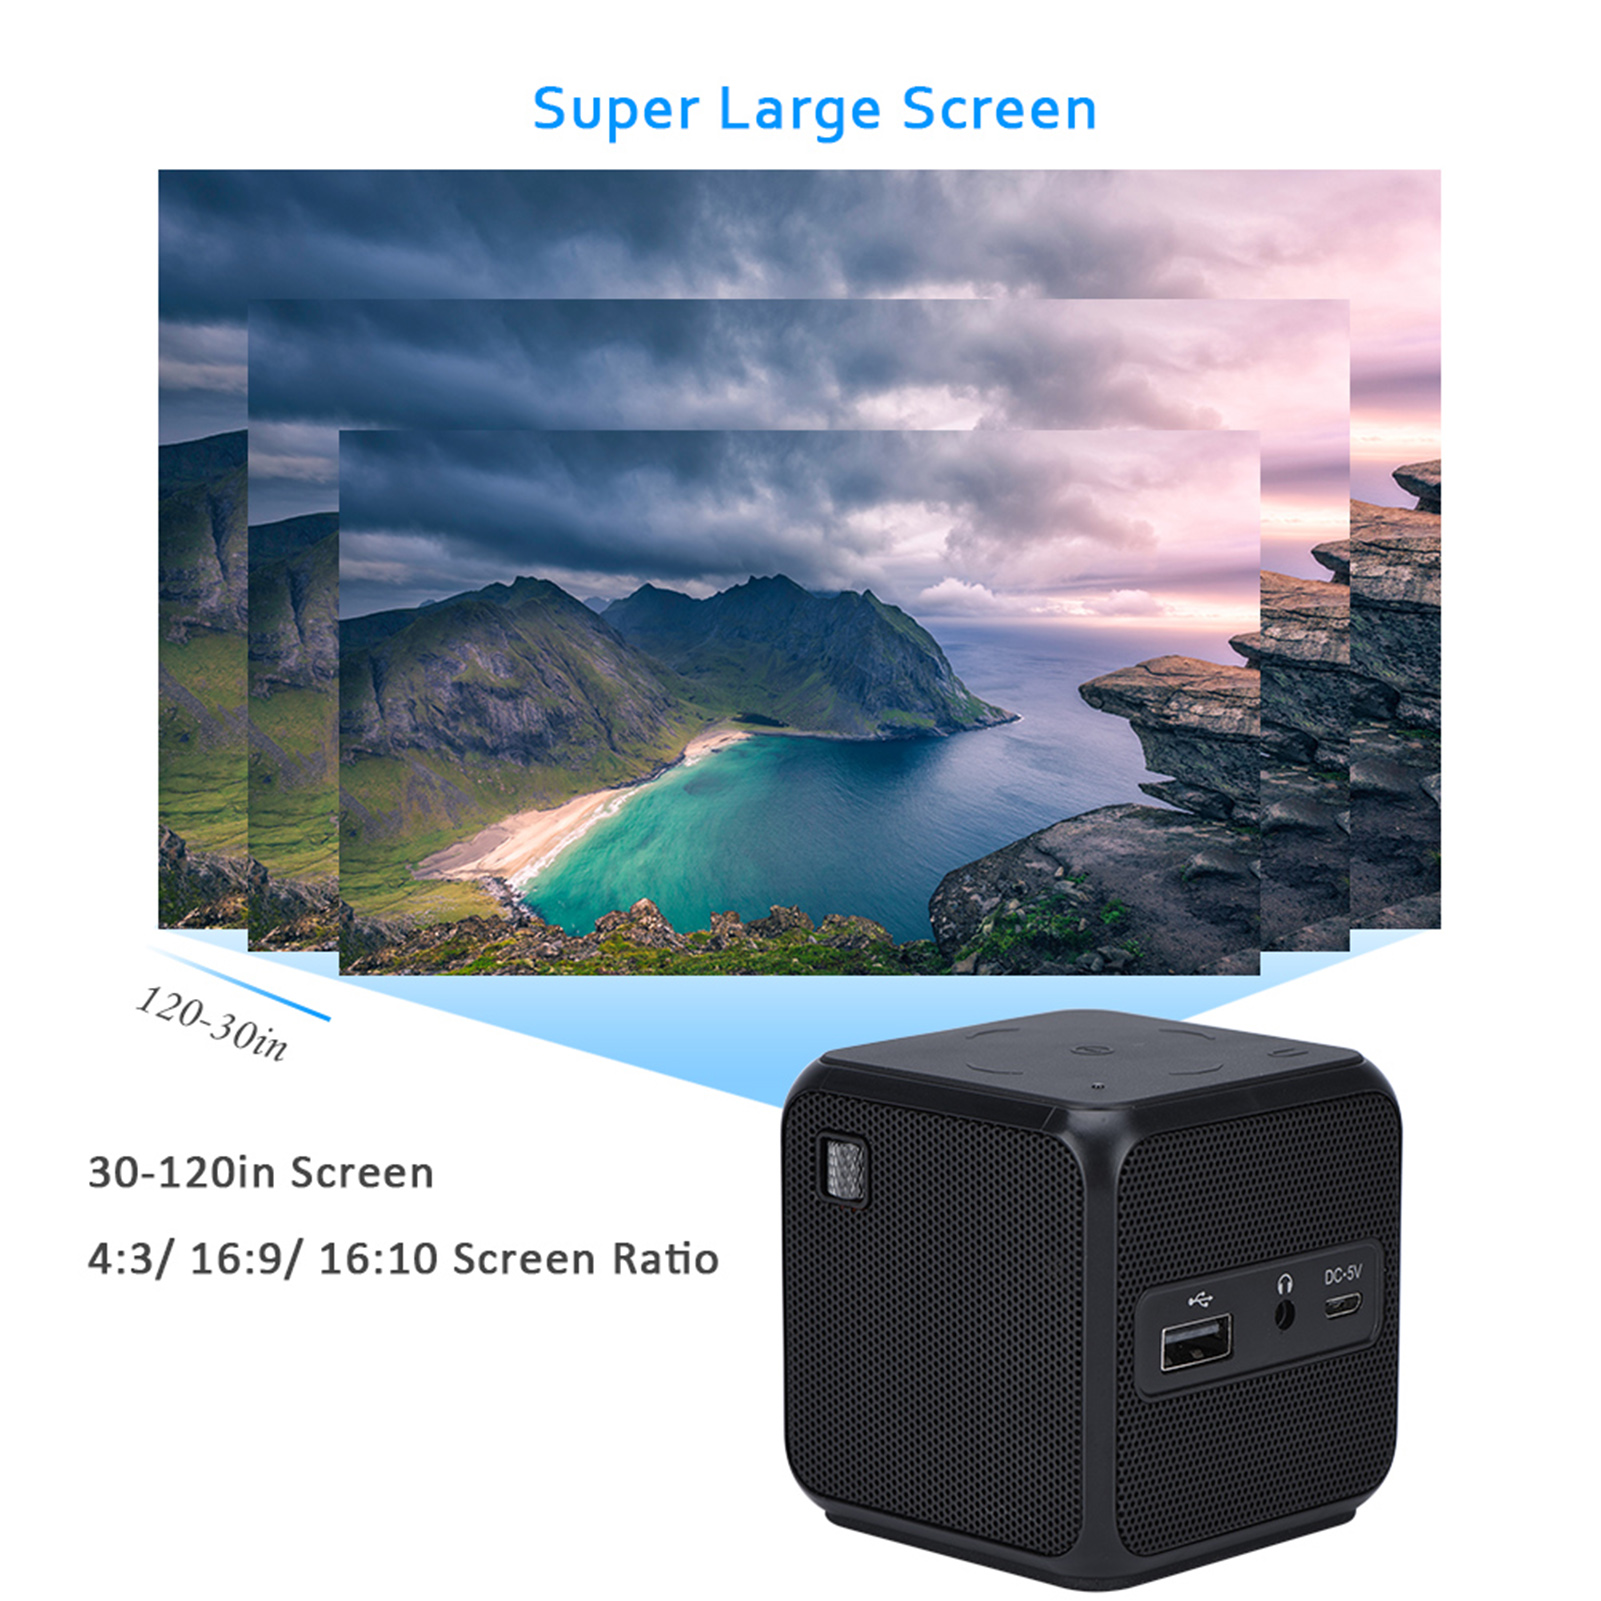 2-4G-DLP-WiFi-Micro-LED-Projector-Multimedia-for-Android-IOS-Windows-AirPlay